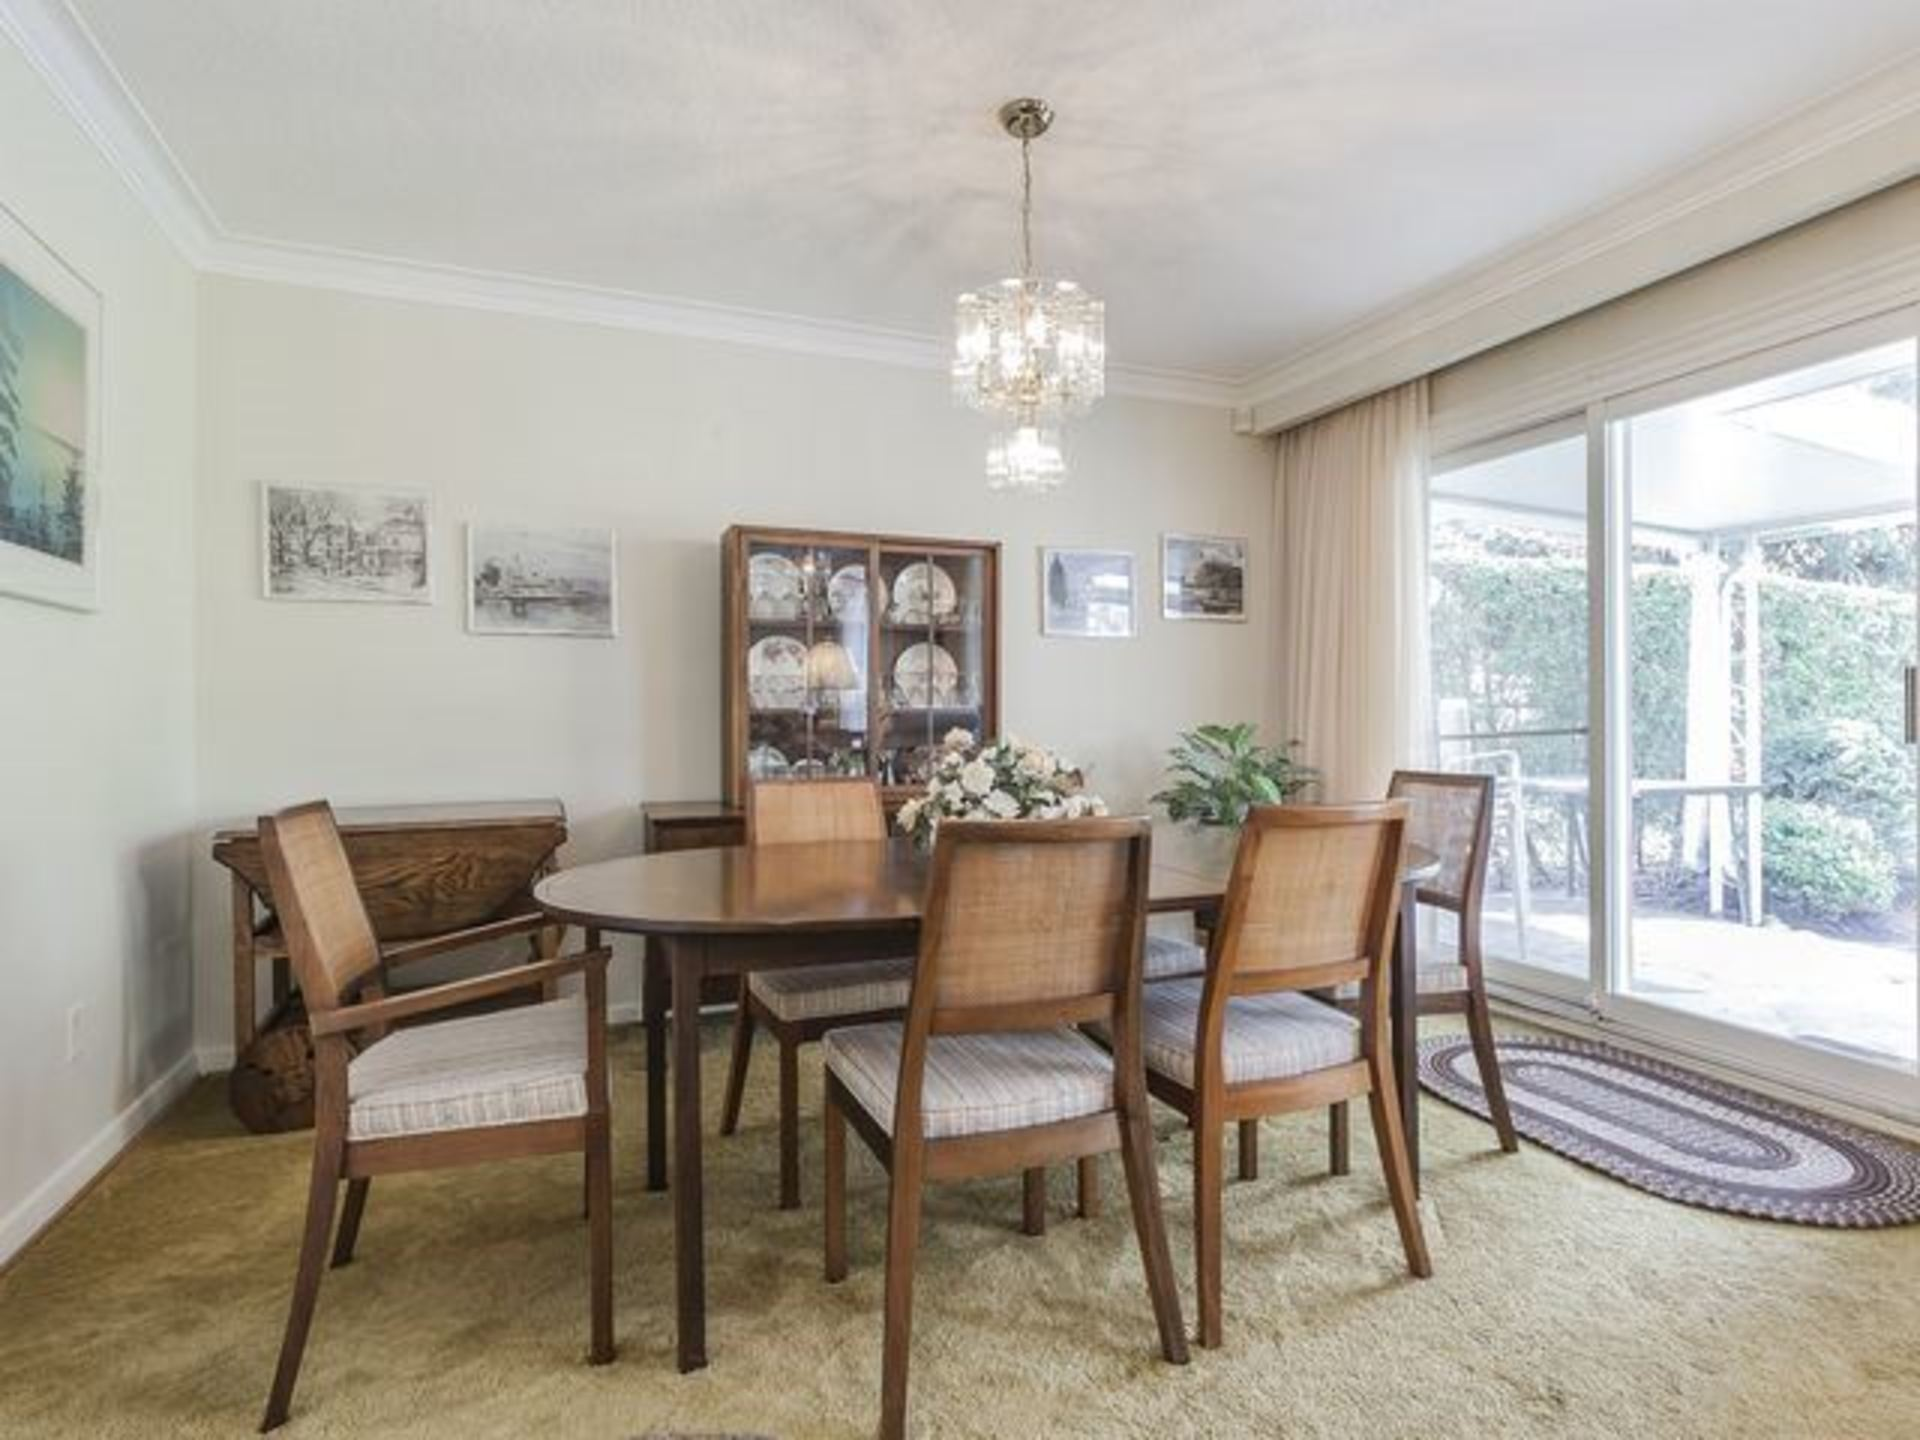 44 at SALE # 464 - 46 Palomino Crescent, Bayview Village, Toronto